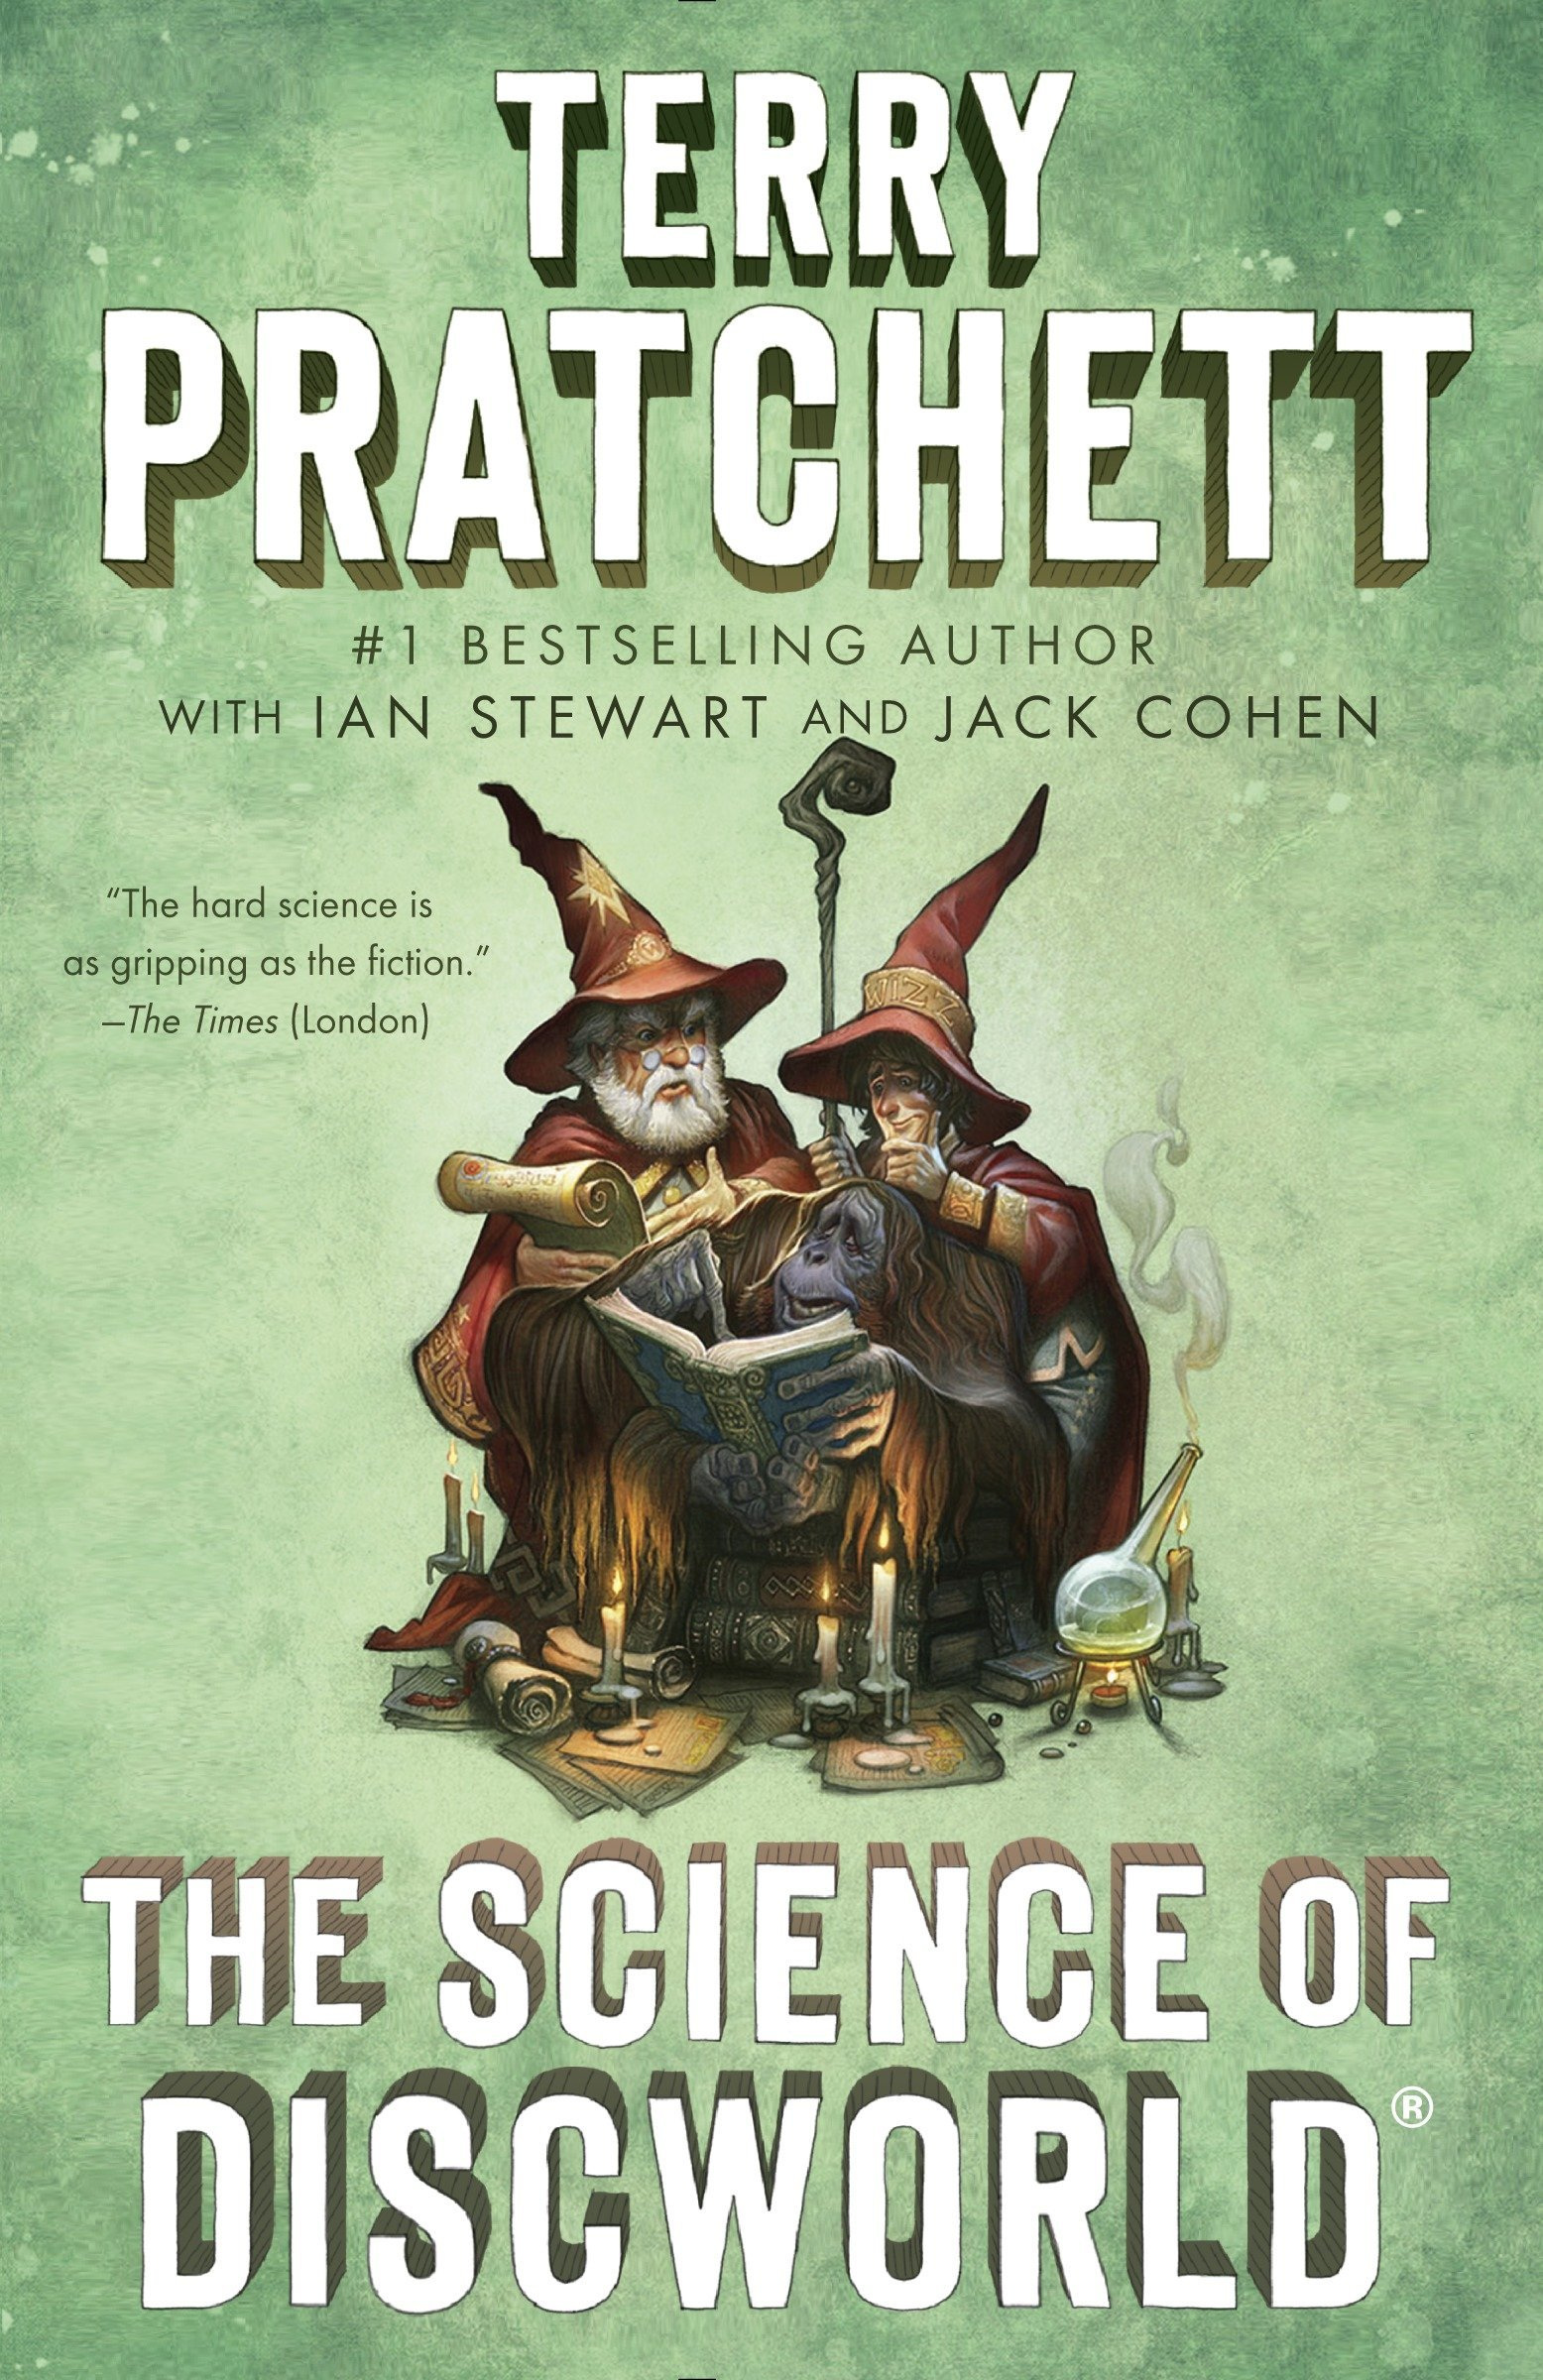 Download The Science of Discworld: A Novel (Science of Discworld Series) pdf